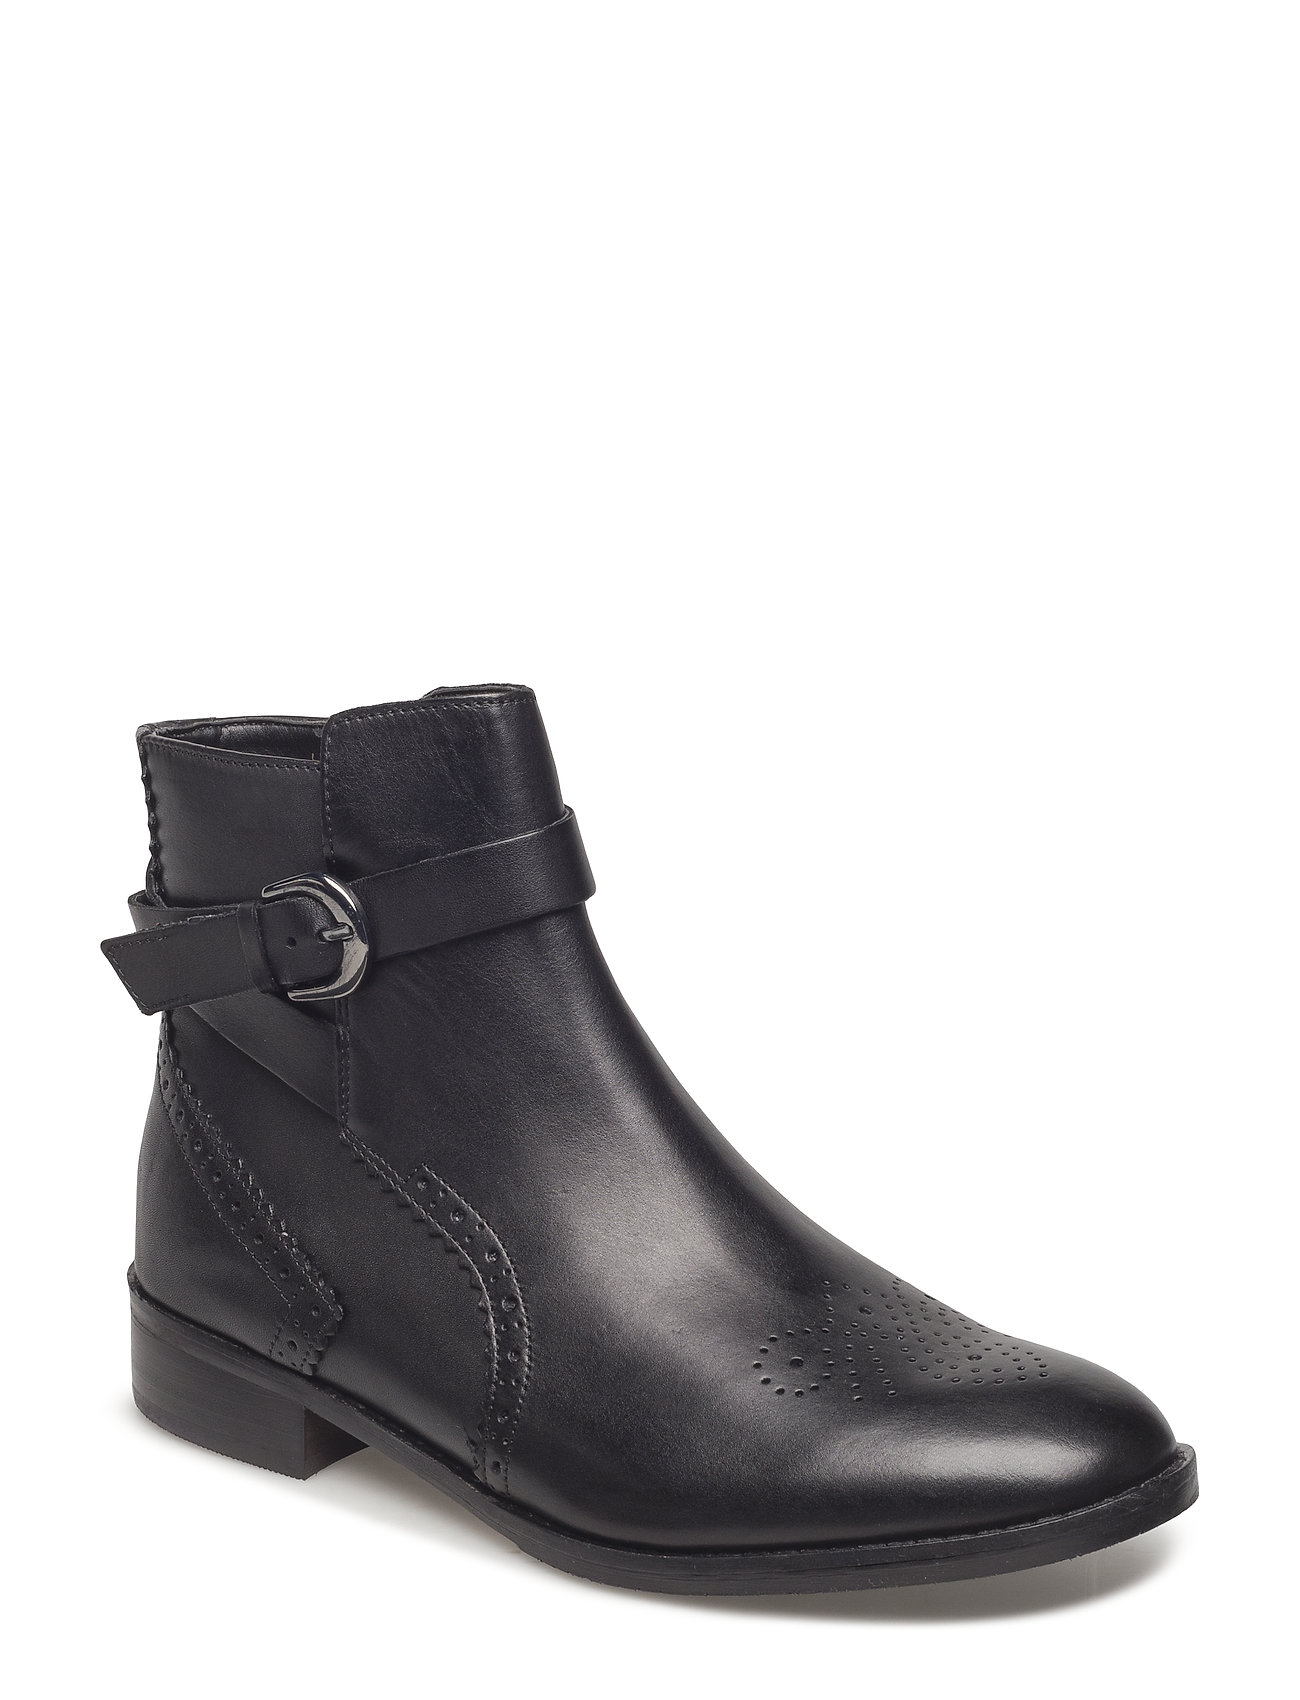 Image of Netley Olivia Shoes Boots Ankle Boots Ankle Boot - Flat Sort Clarks (3406146443)